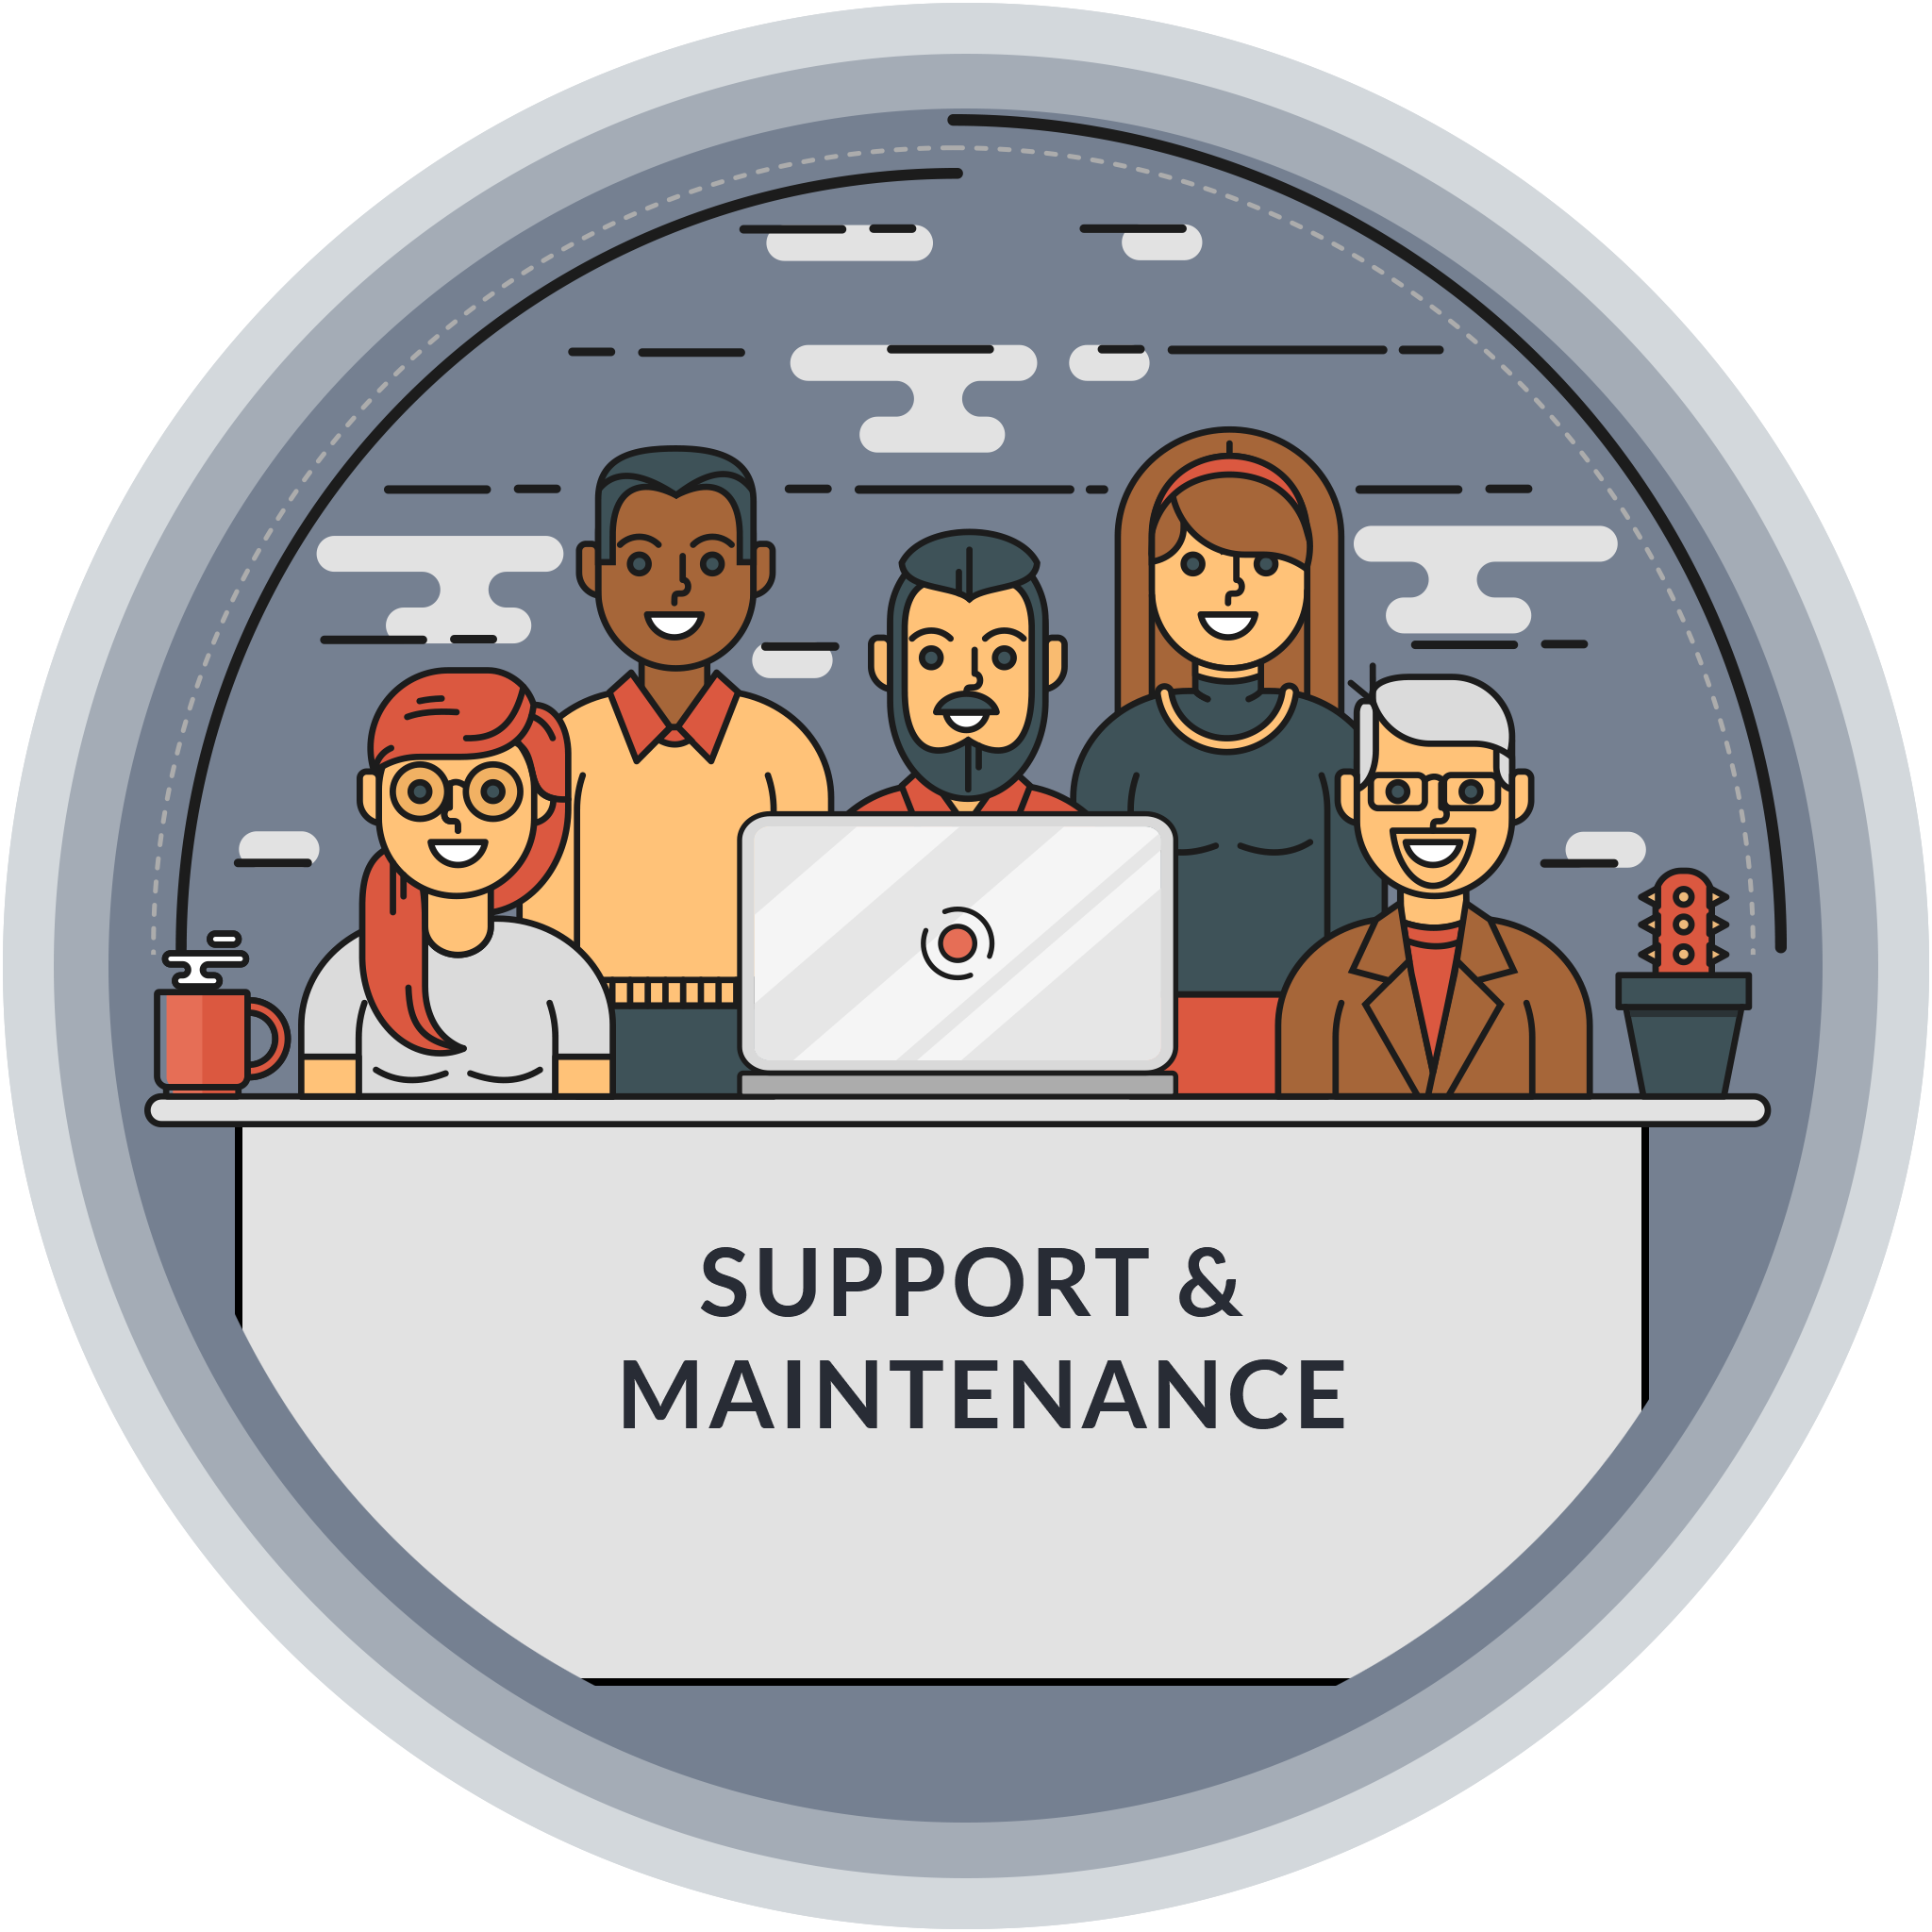 Support and Maintenance Services